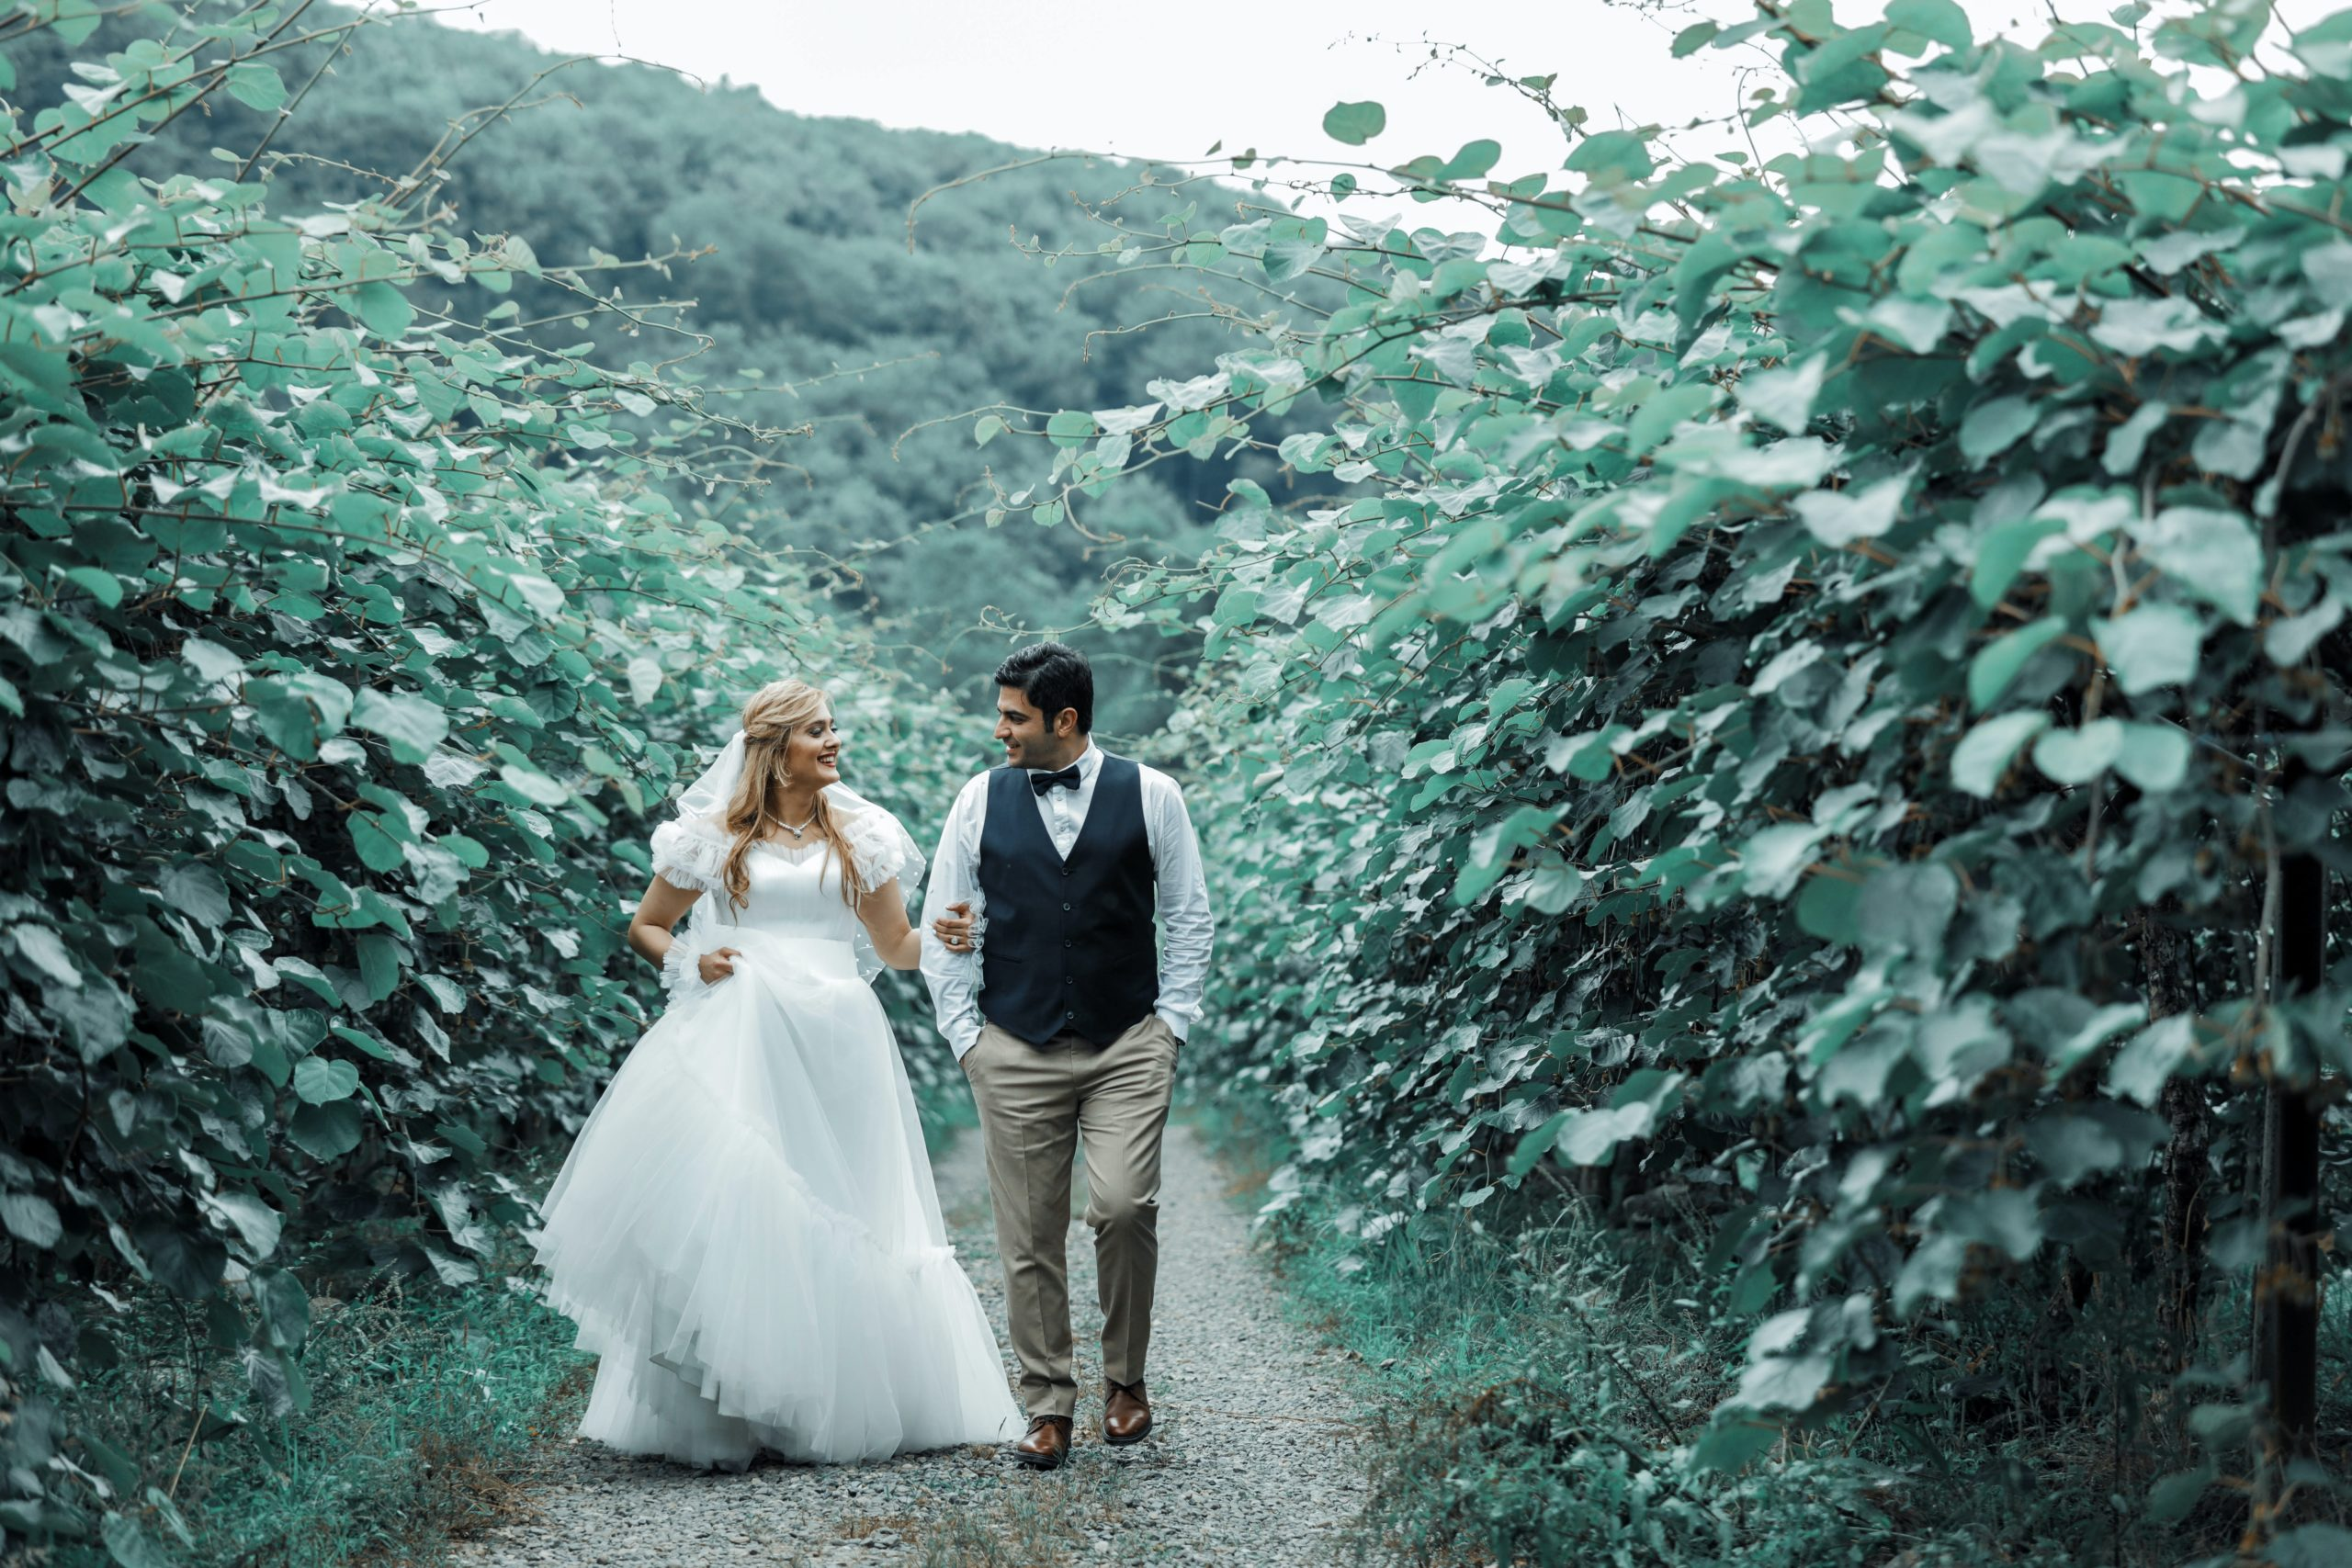 bride-and-groom-walking-on-a-pathway-between-plants-2909569